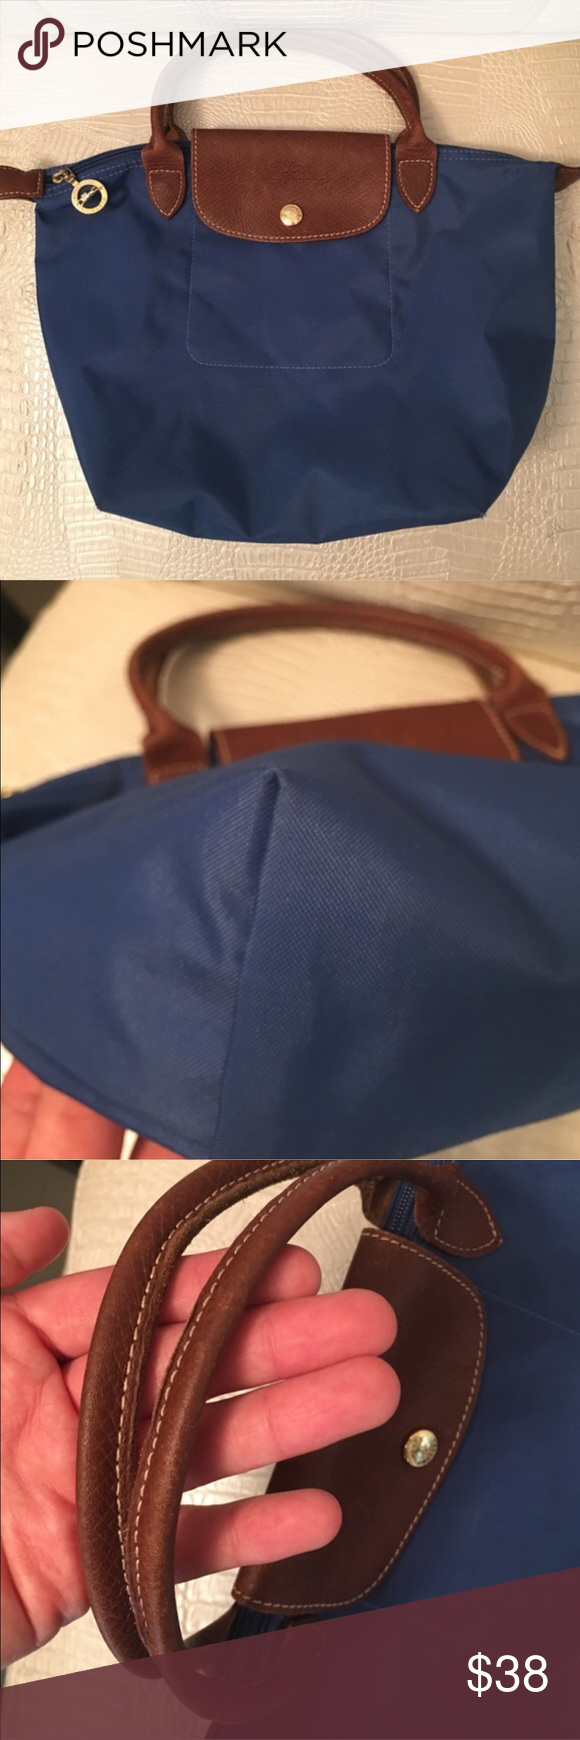 Lonchamp small in excellent condition Great shape very minor wear from use Longchamp Bags Totes